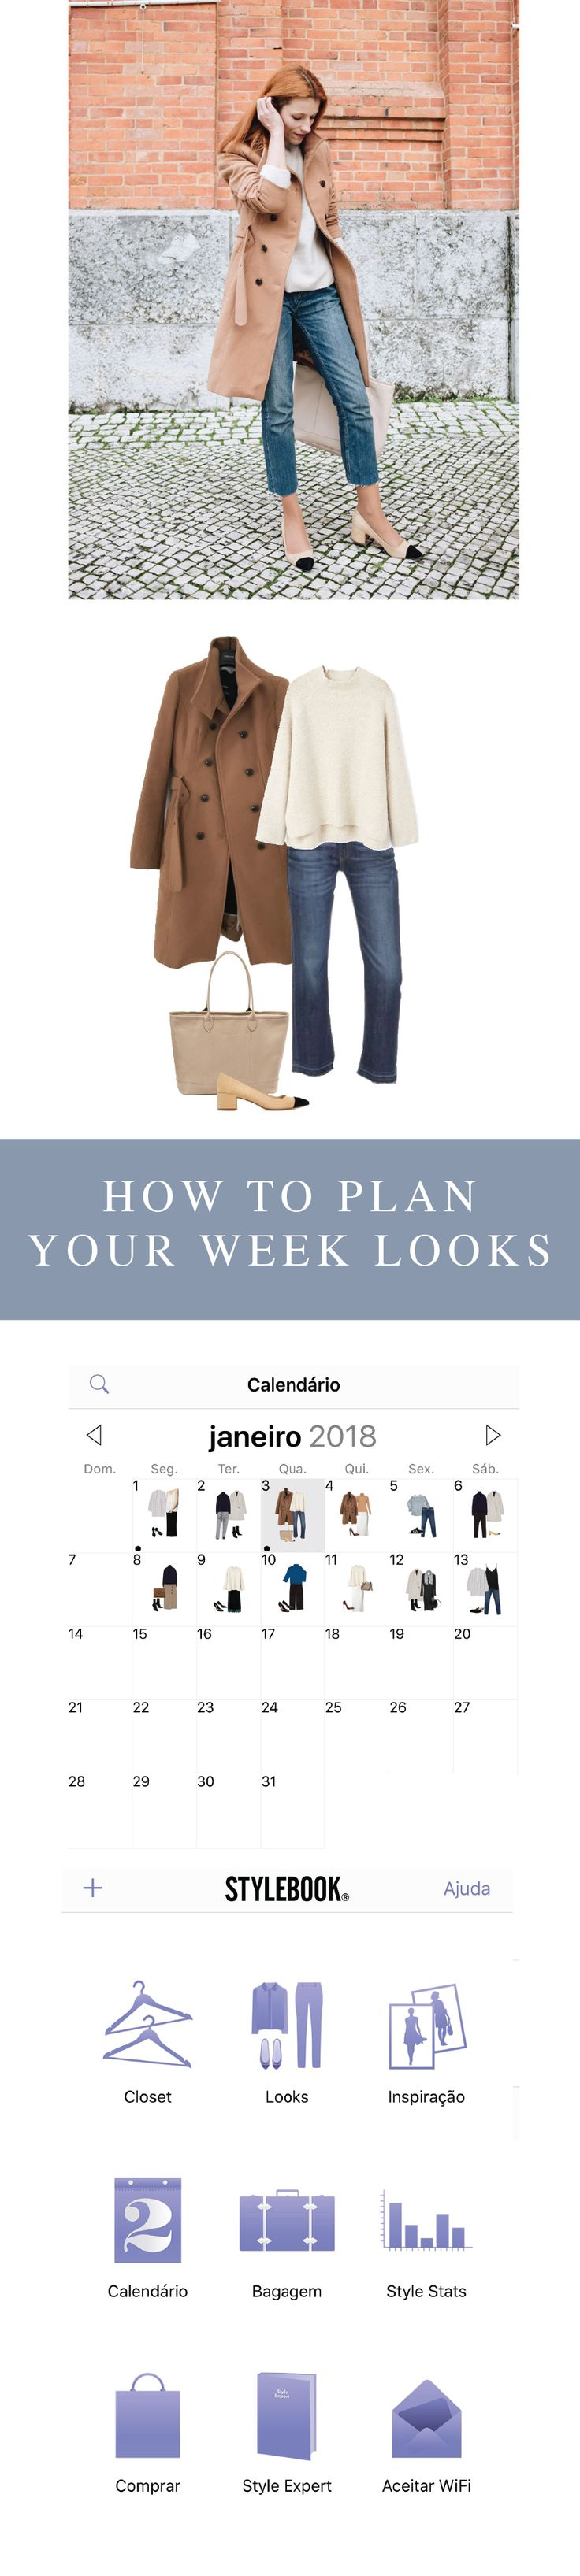 Plan and schedule your outfits for the week, stylebook app, wardrobe planner, outfits planner